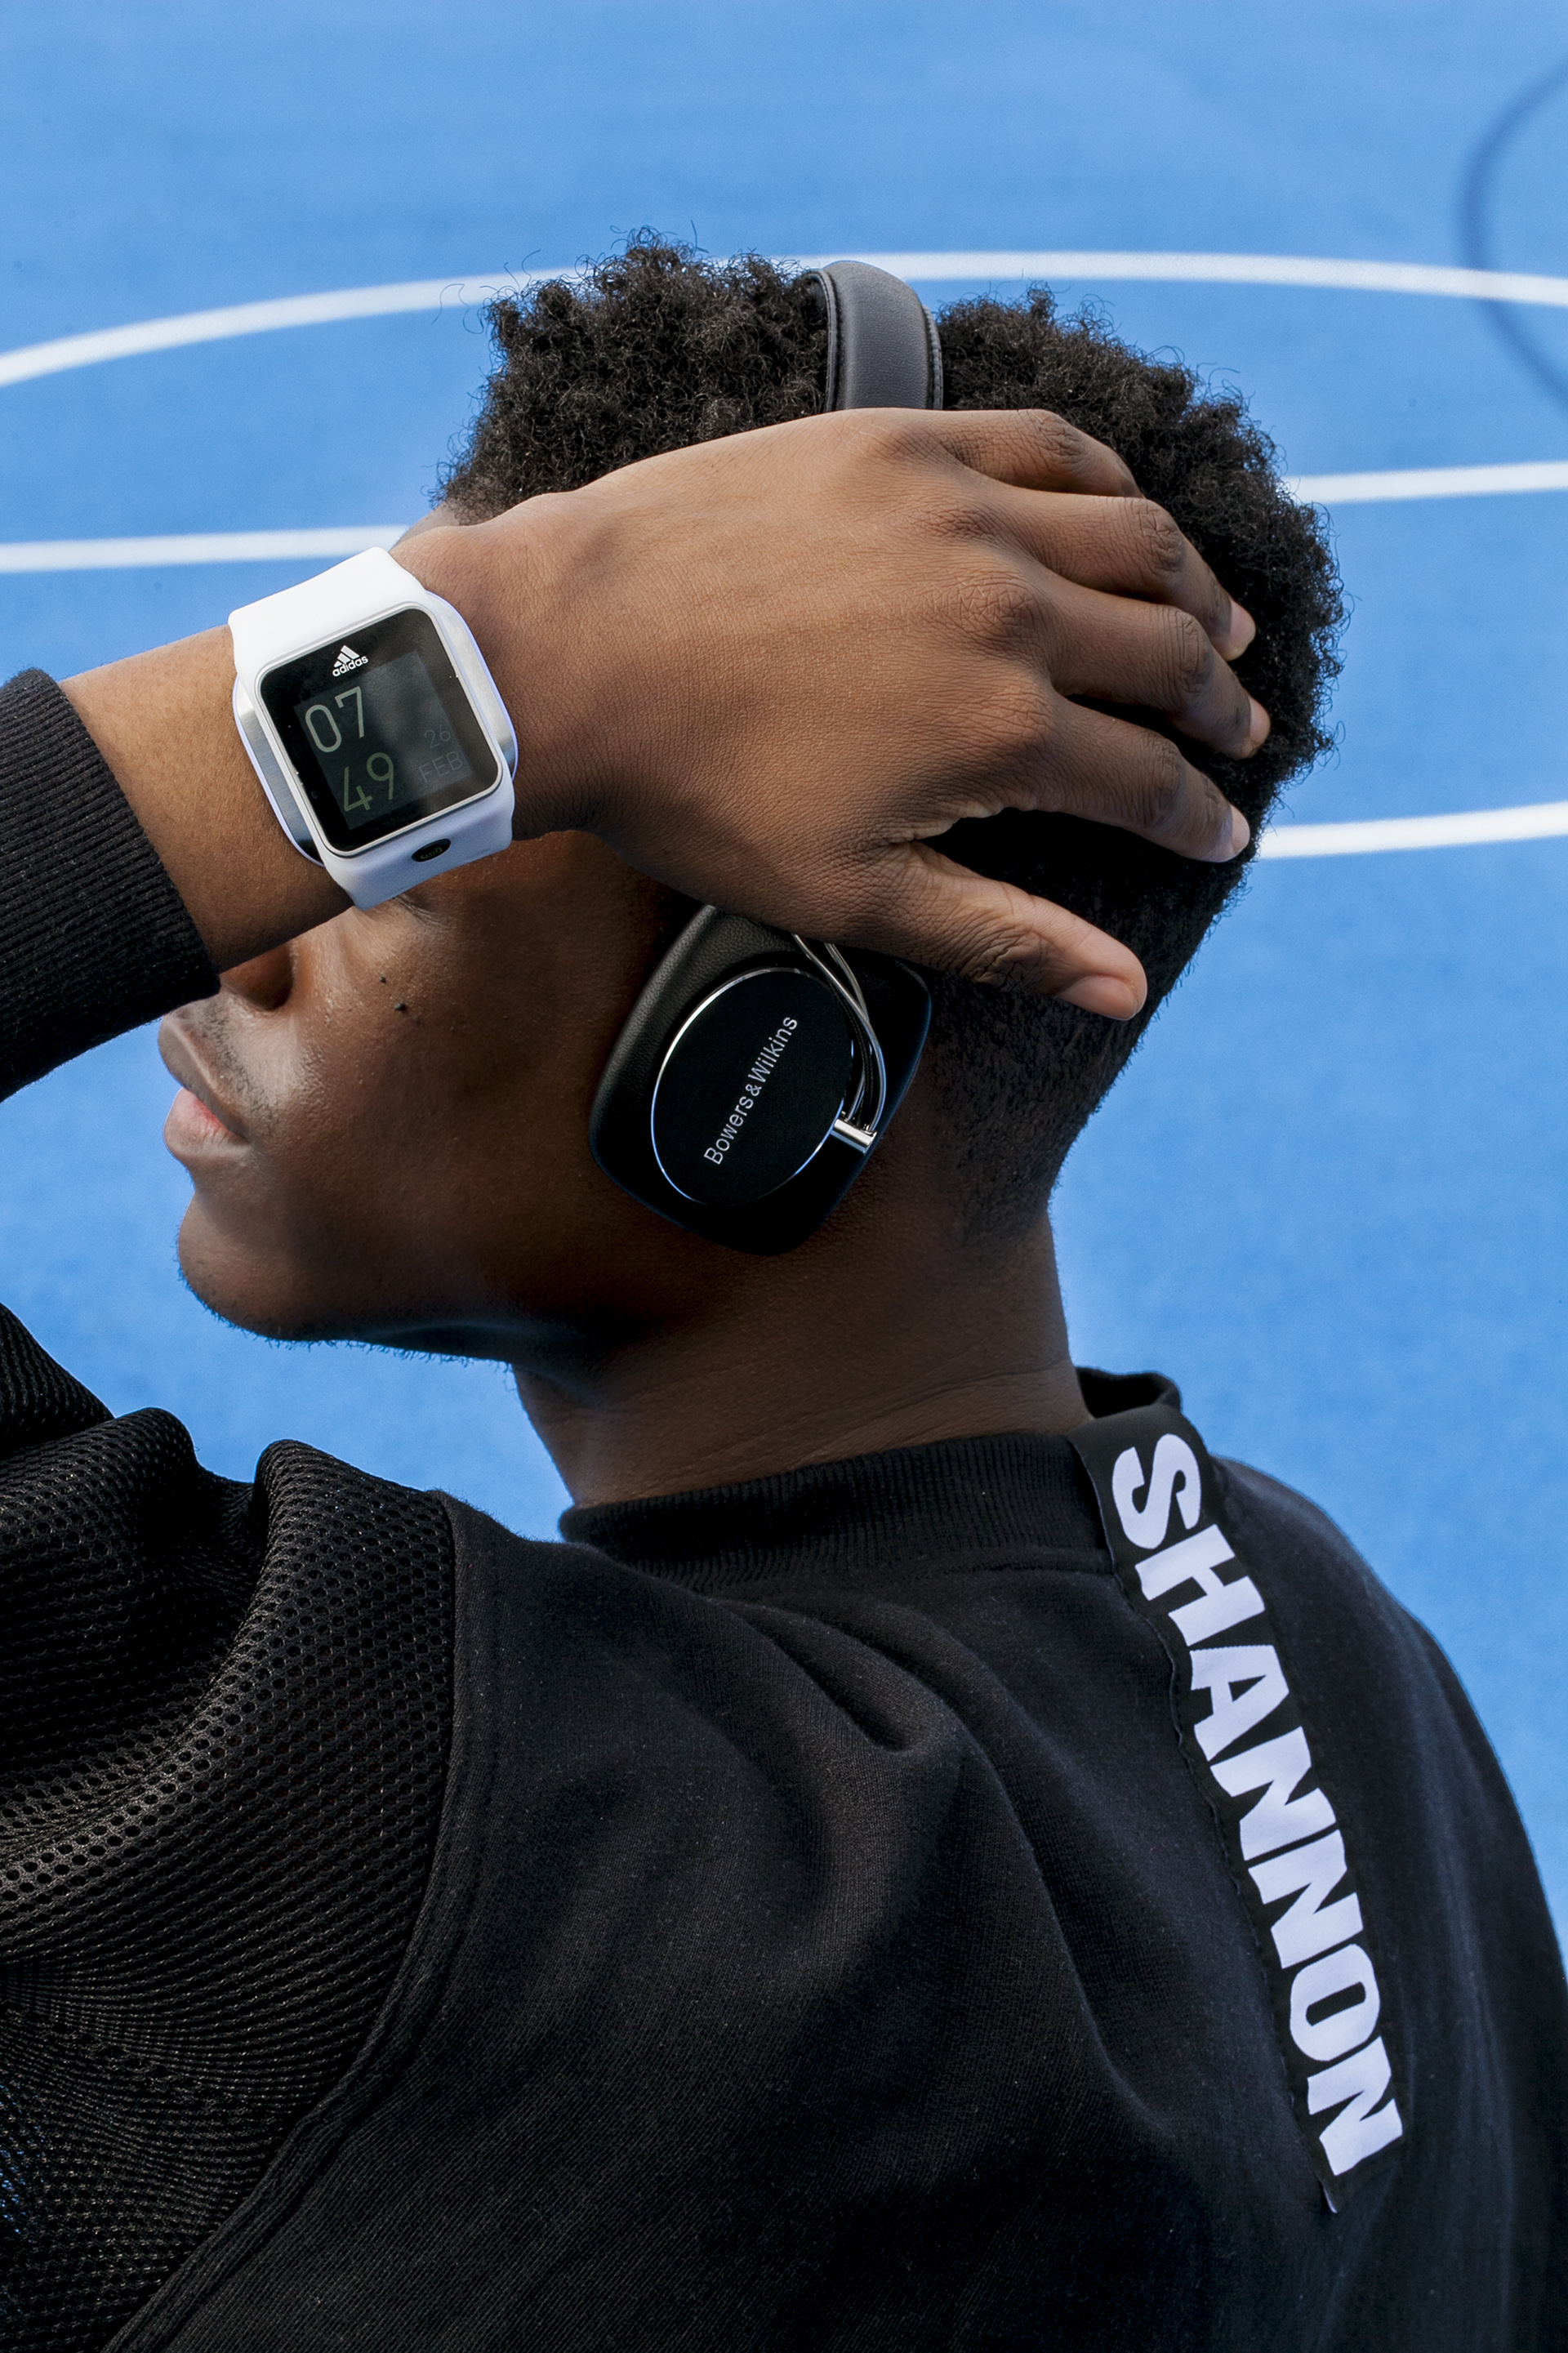 Before During After SAMSON Vol. 2 Adidas MiCoach Watch Bowers & Wilkins Christopher Shannon.jpg